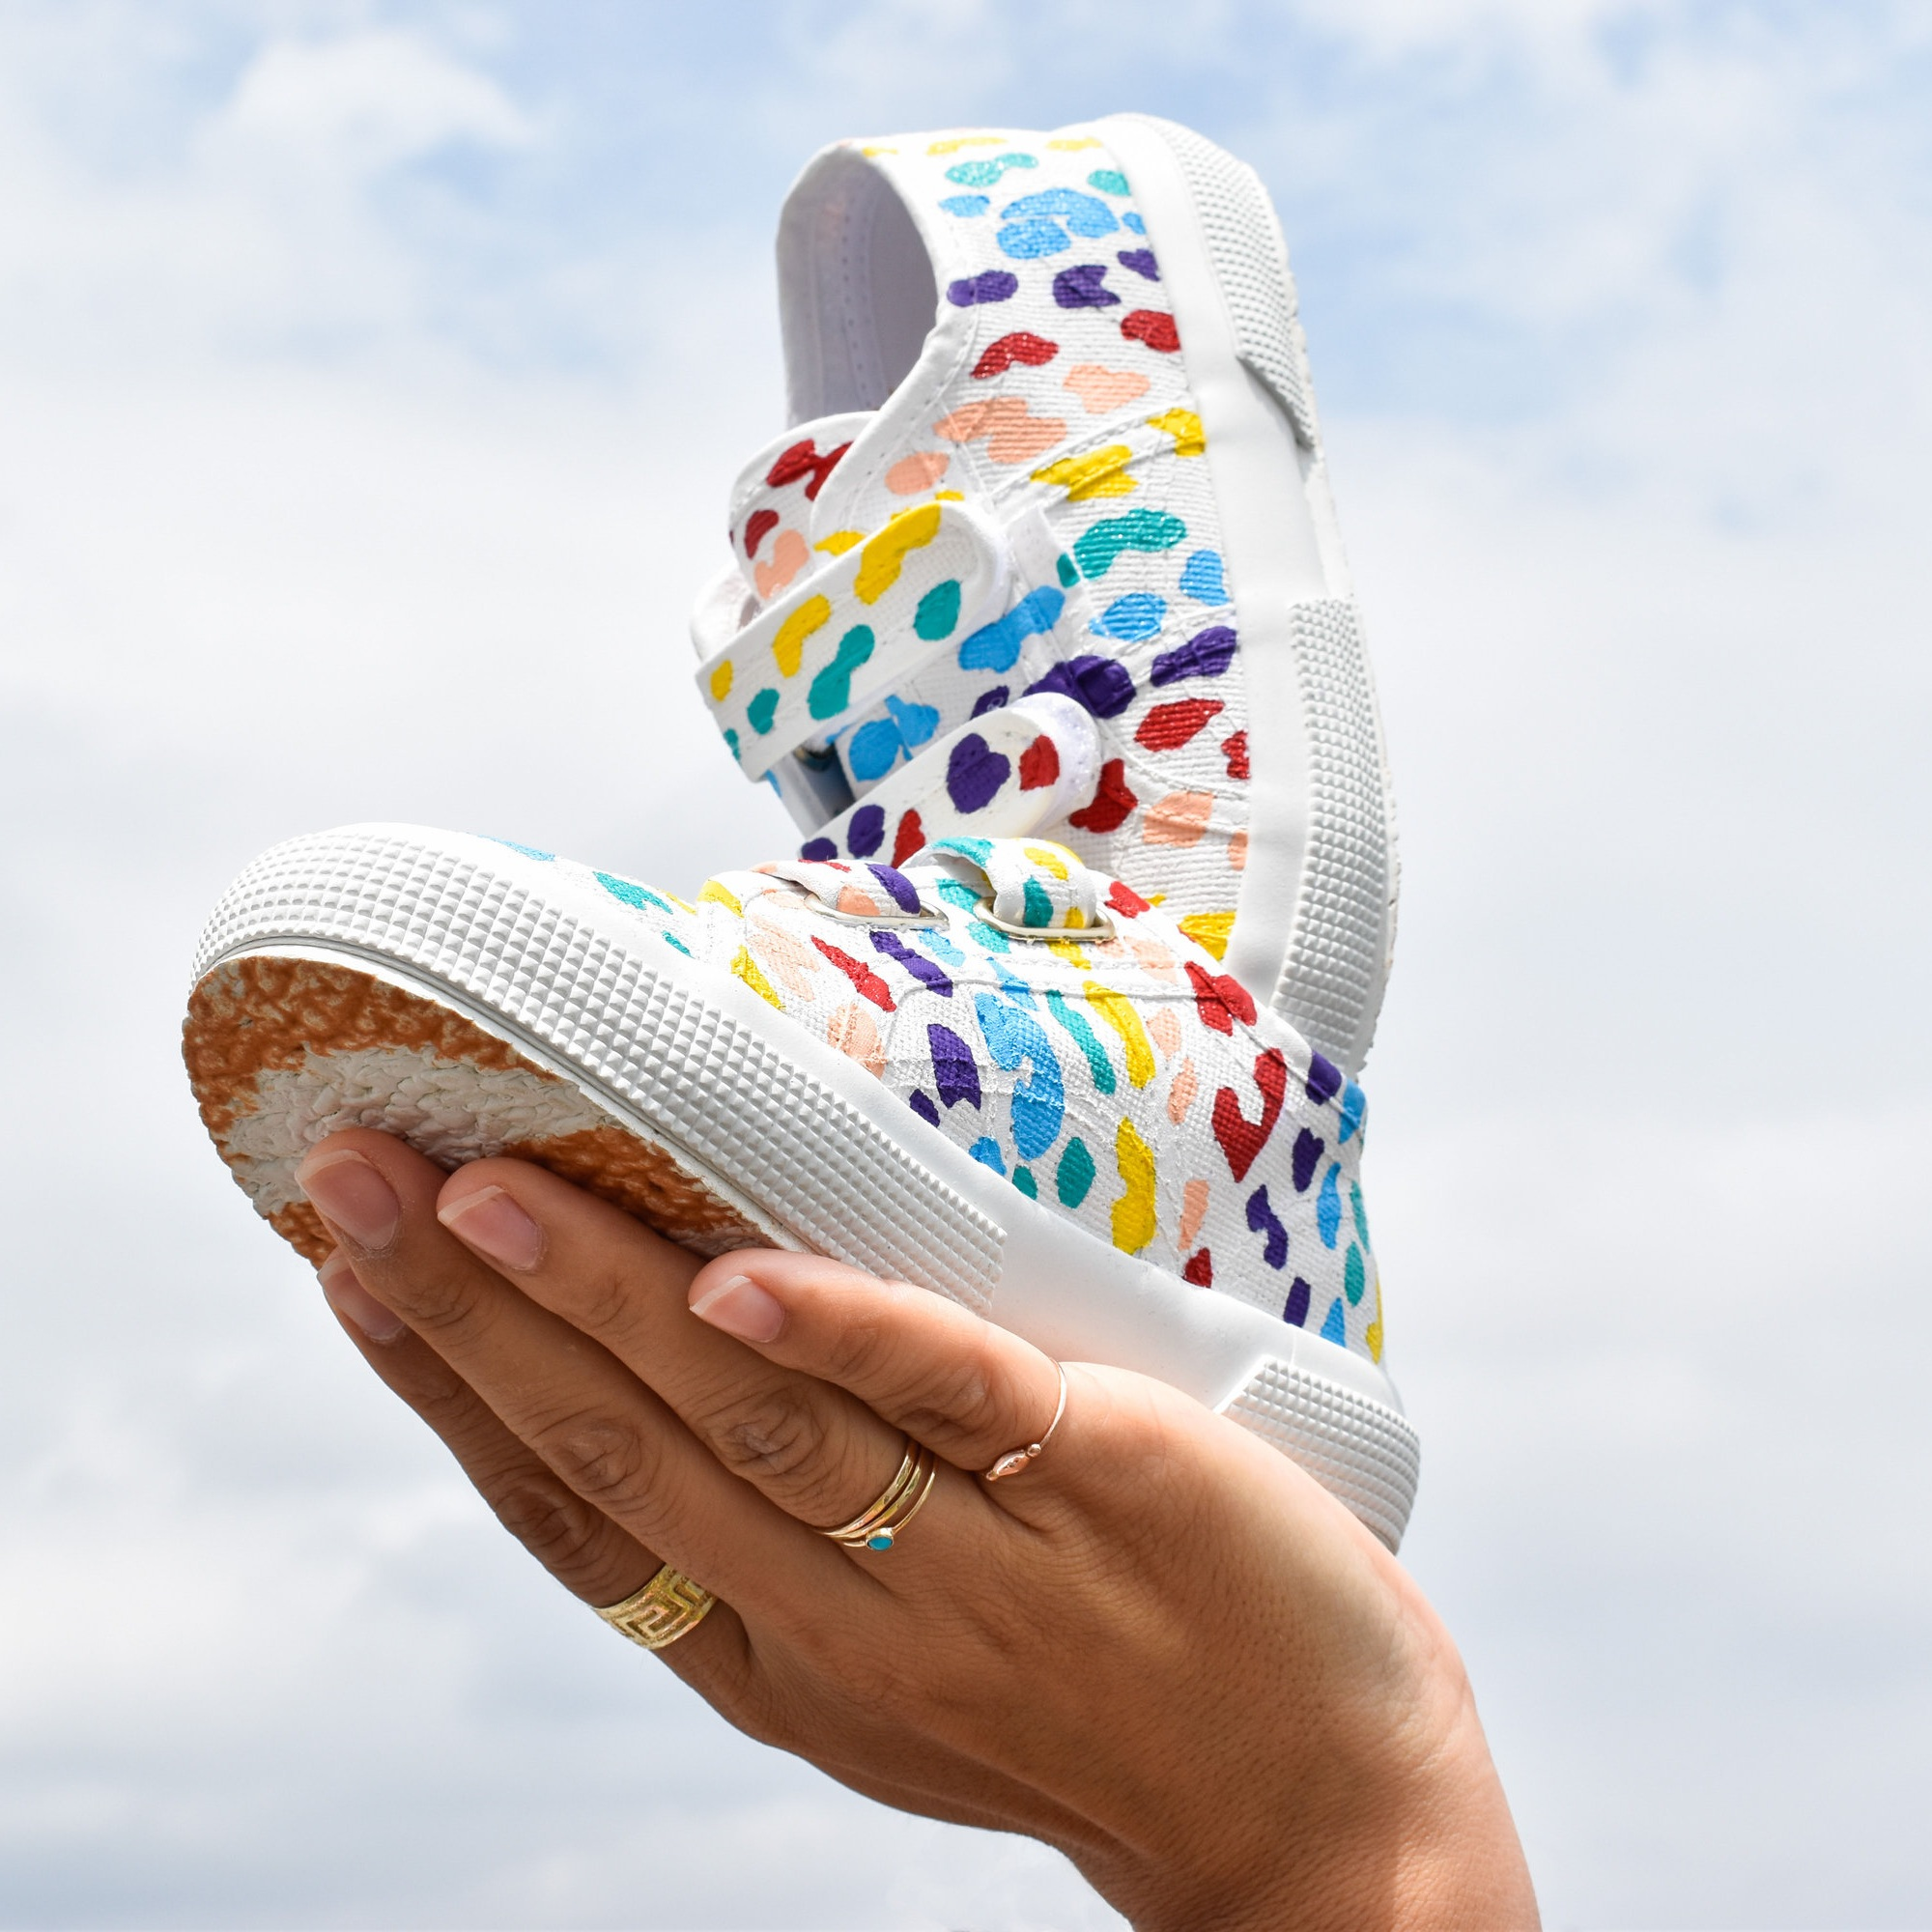 Little Kids size 3 & under   Details, scenery fee $115  *Price does not include cost of sneakers